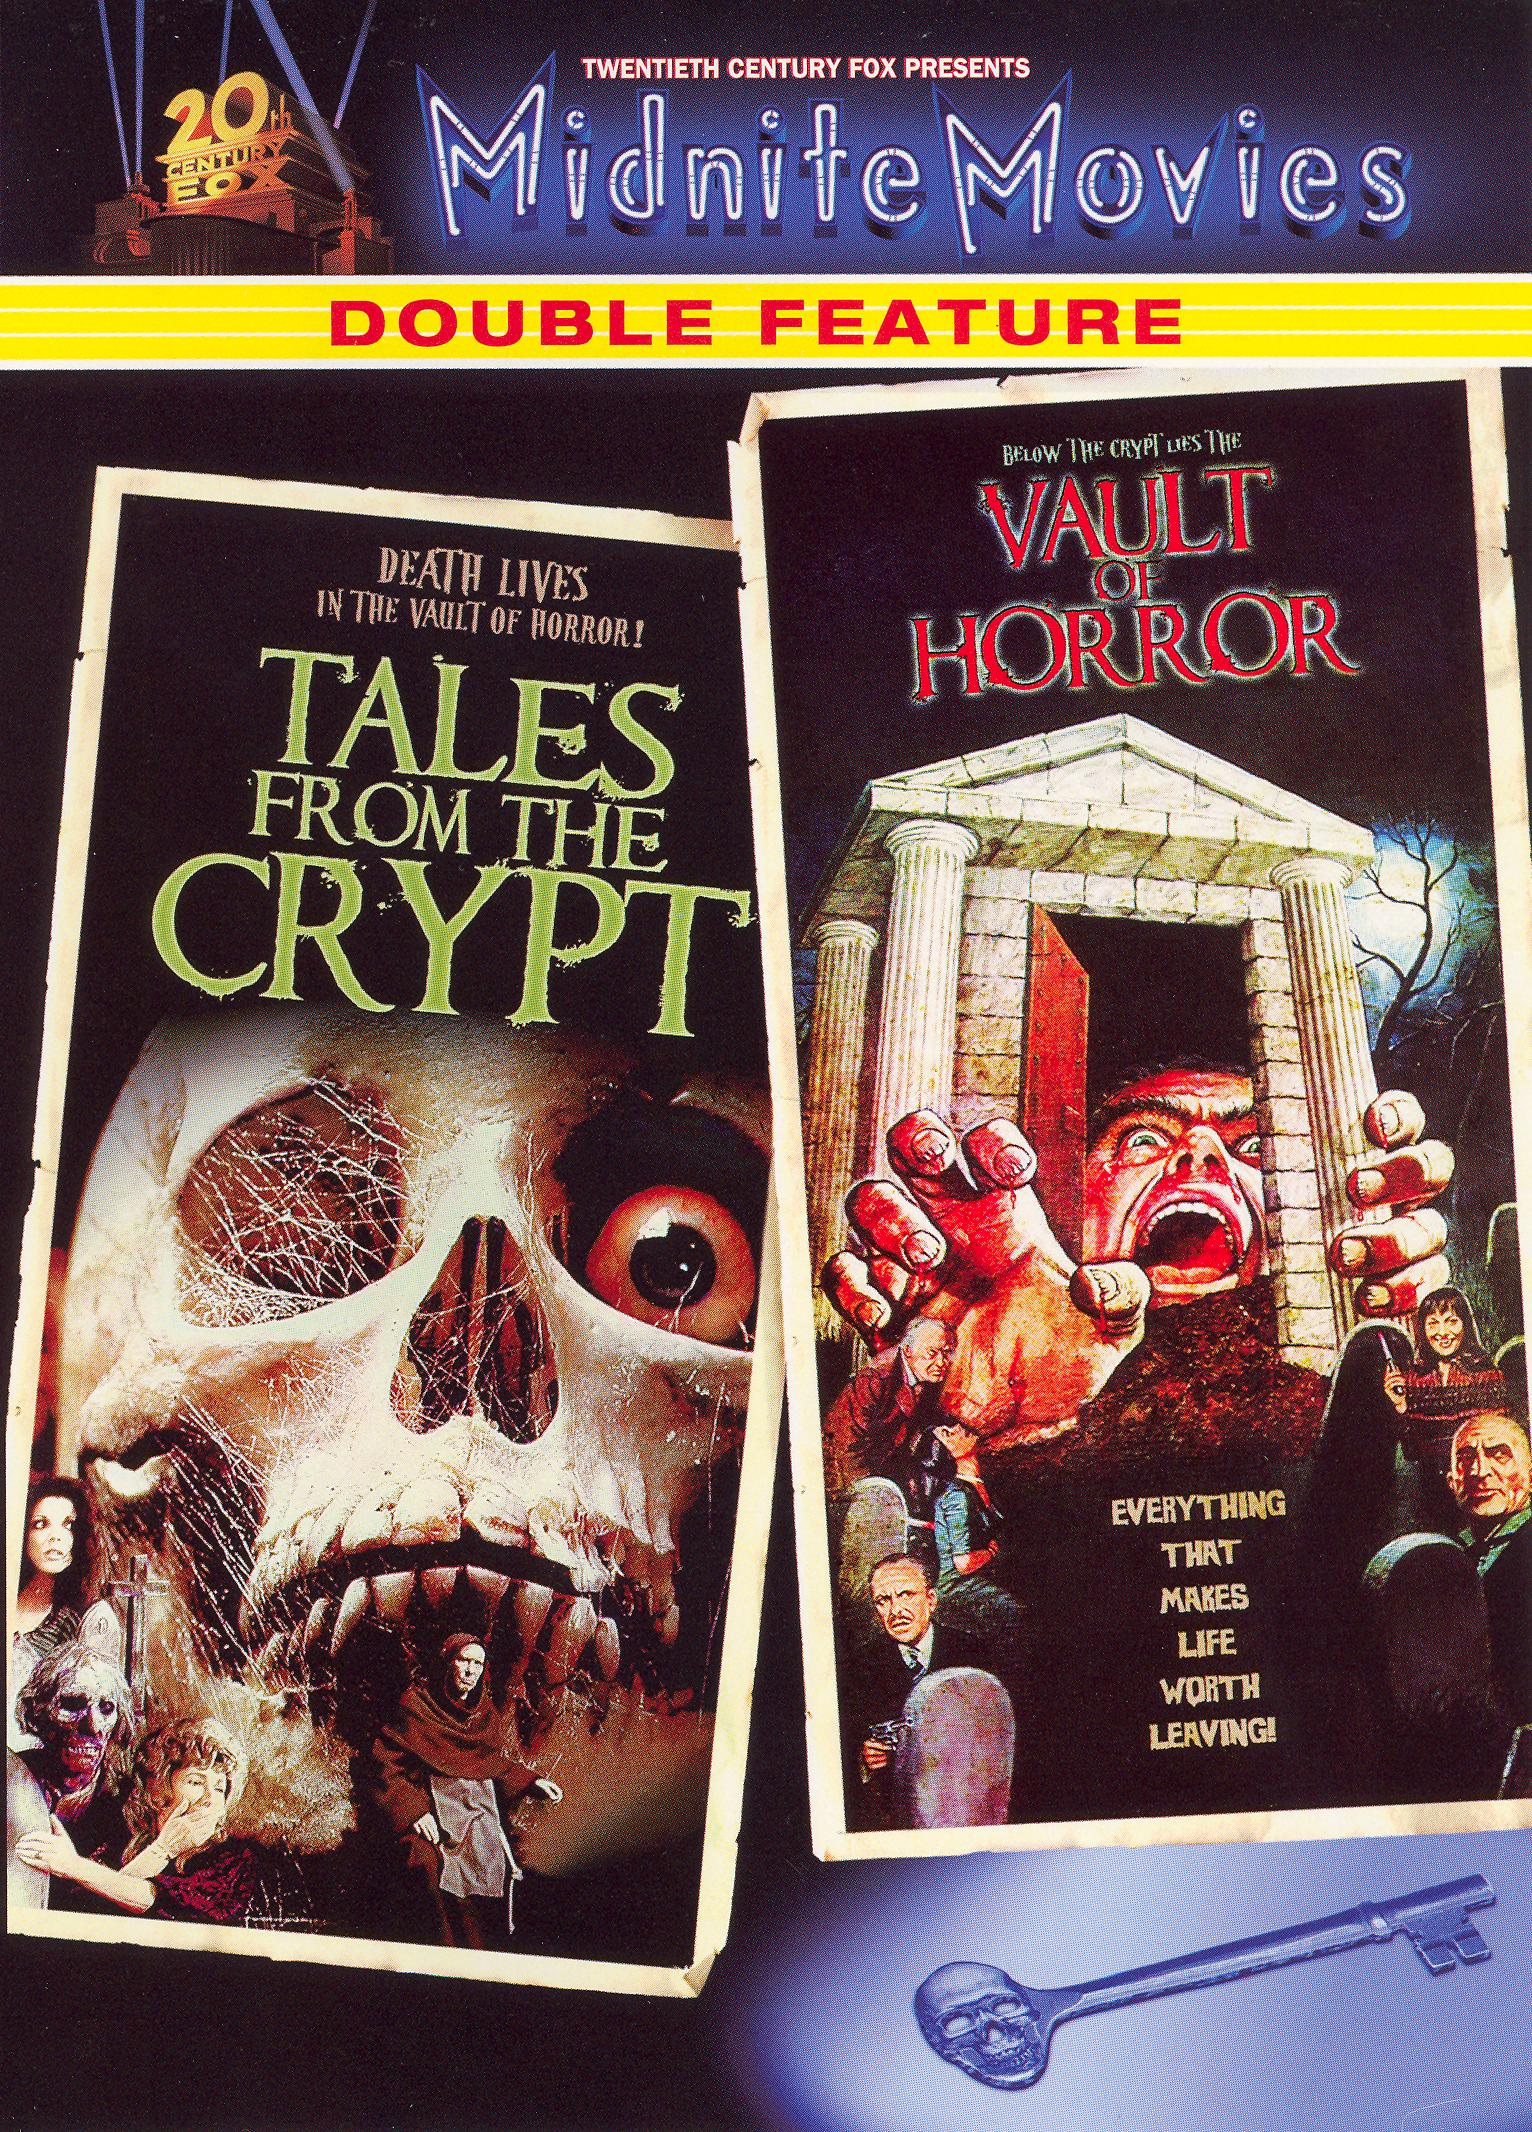 Tales from the Crypt | The Vault of Horror